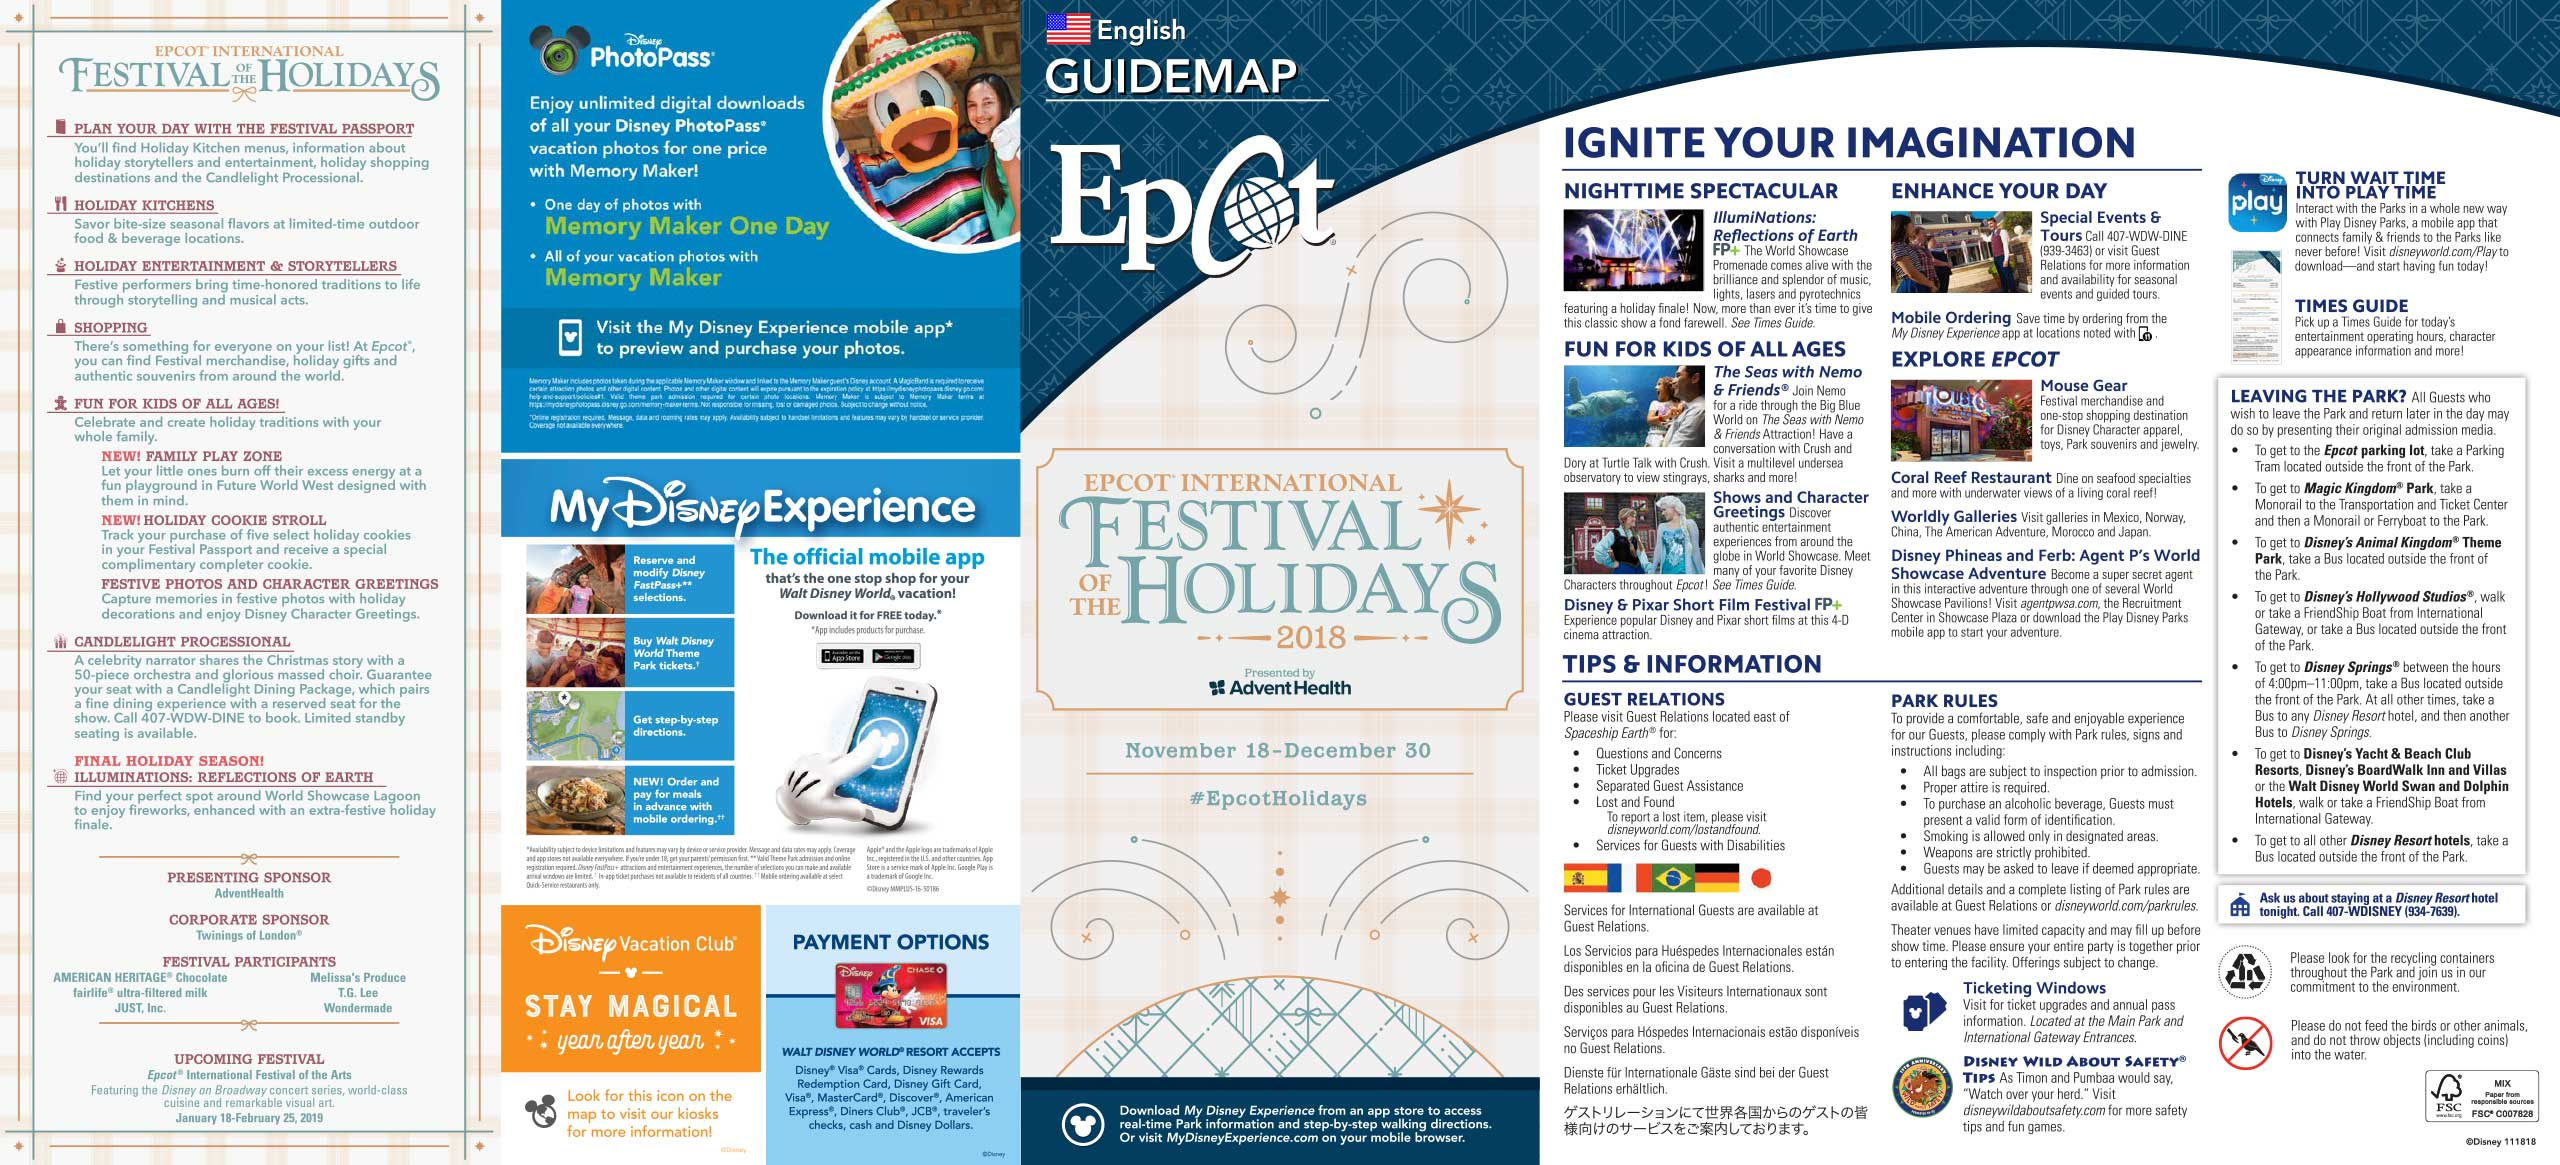 2018 Epcot Festival of the Holidays guide map and times guide